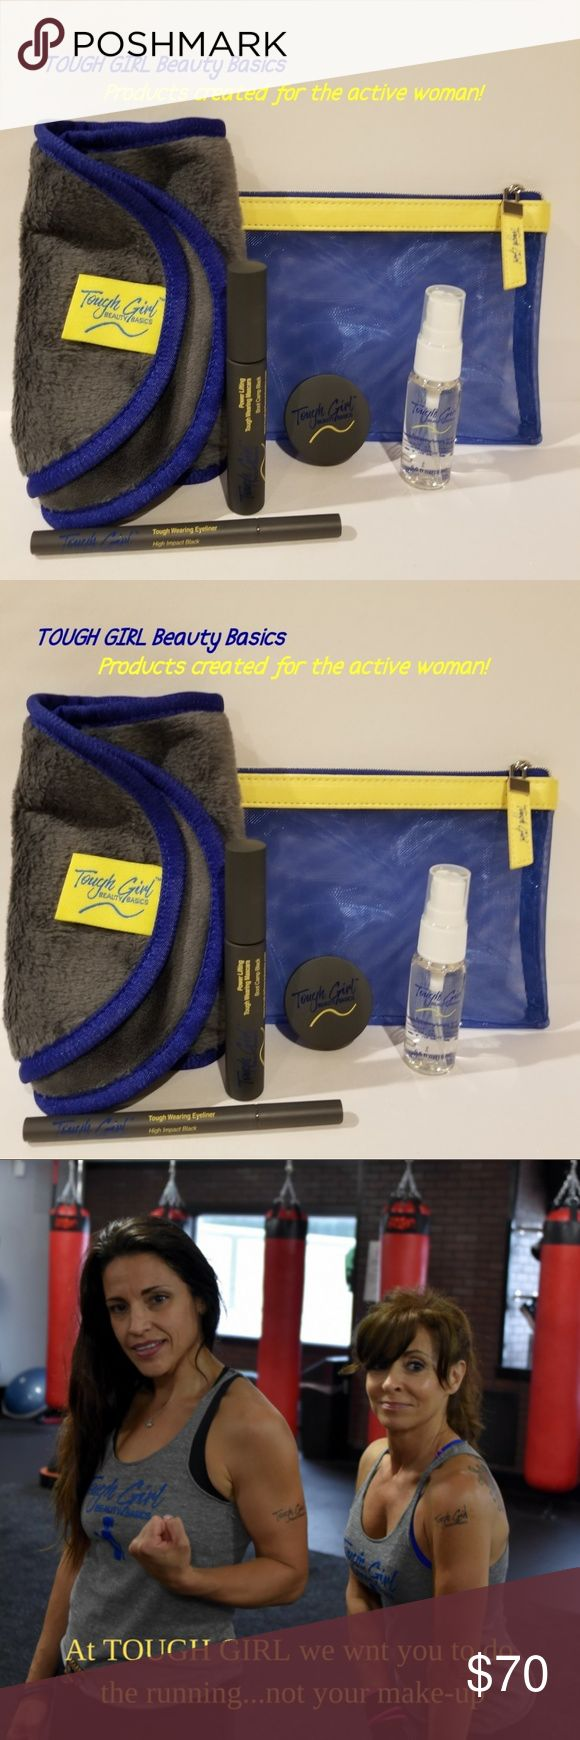 Cosmetics Tough Girl products were created for the active woman! Each kit contai…